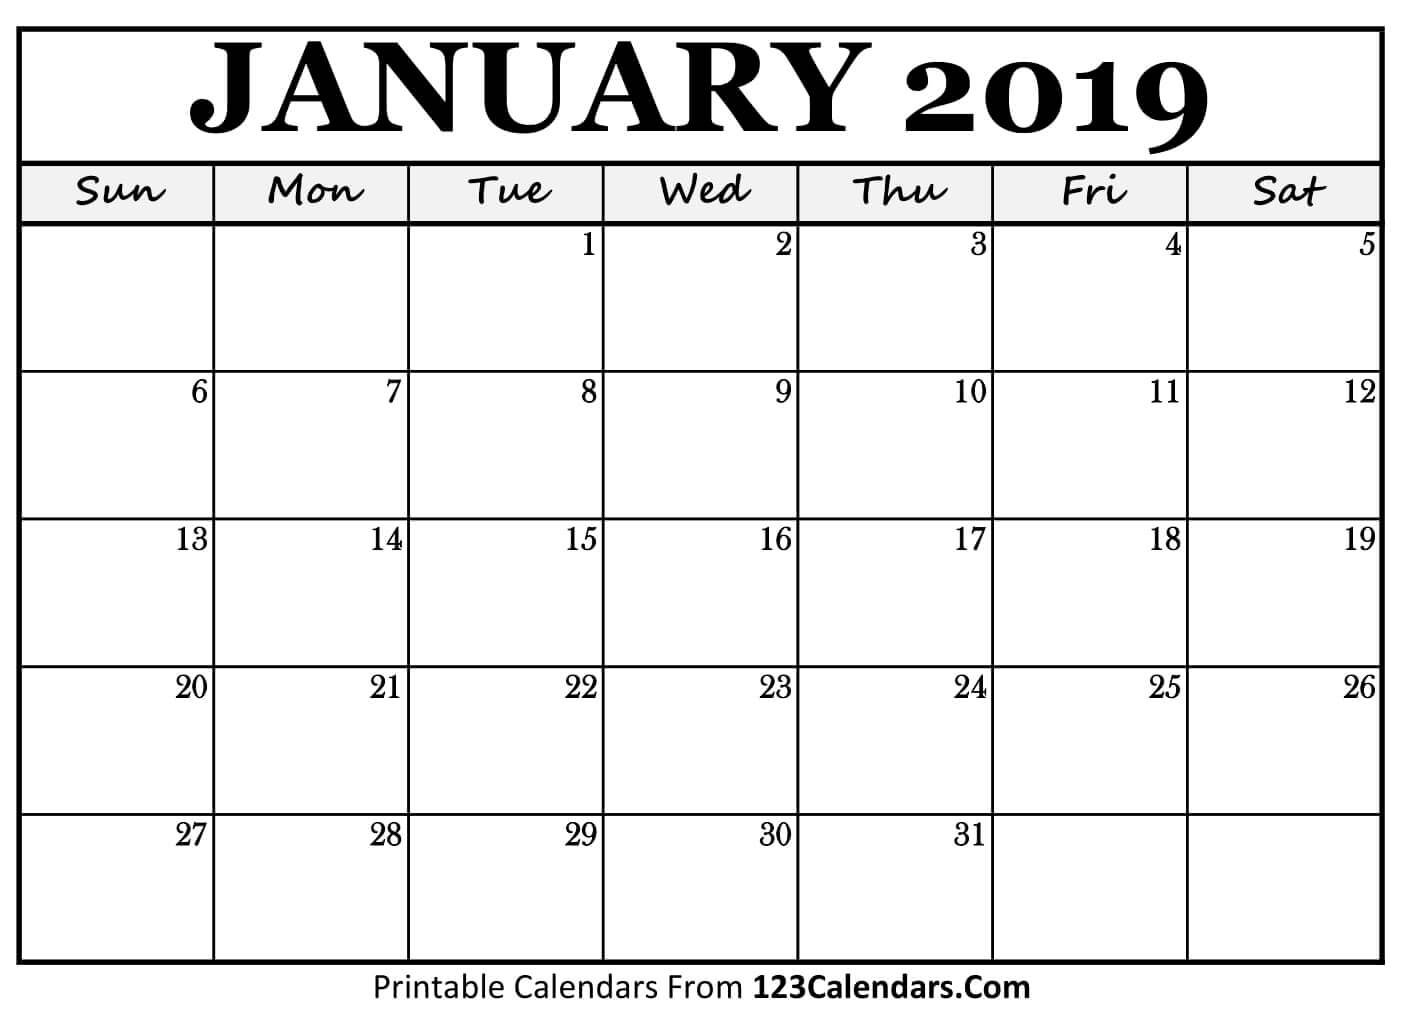 Printable January 2019 Calendar Templates - 123Calendars Calendar 2019 Jan